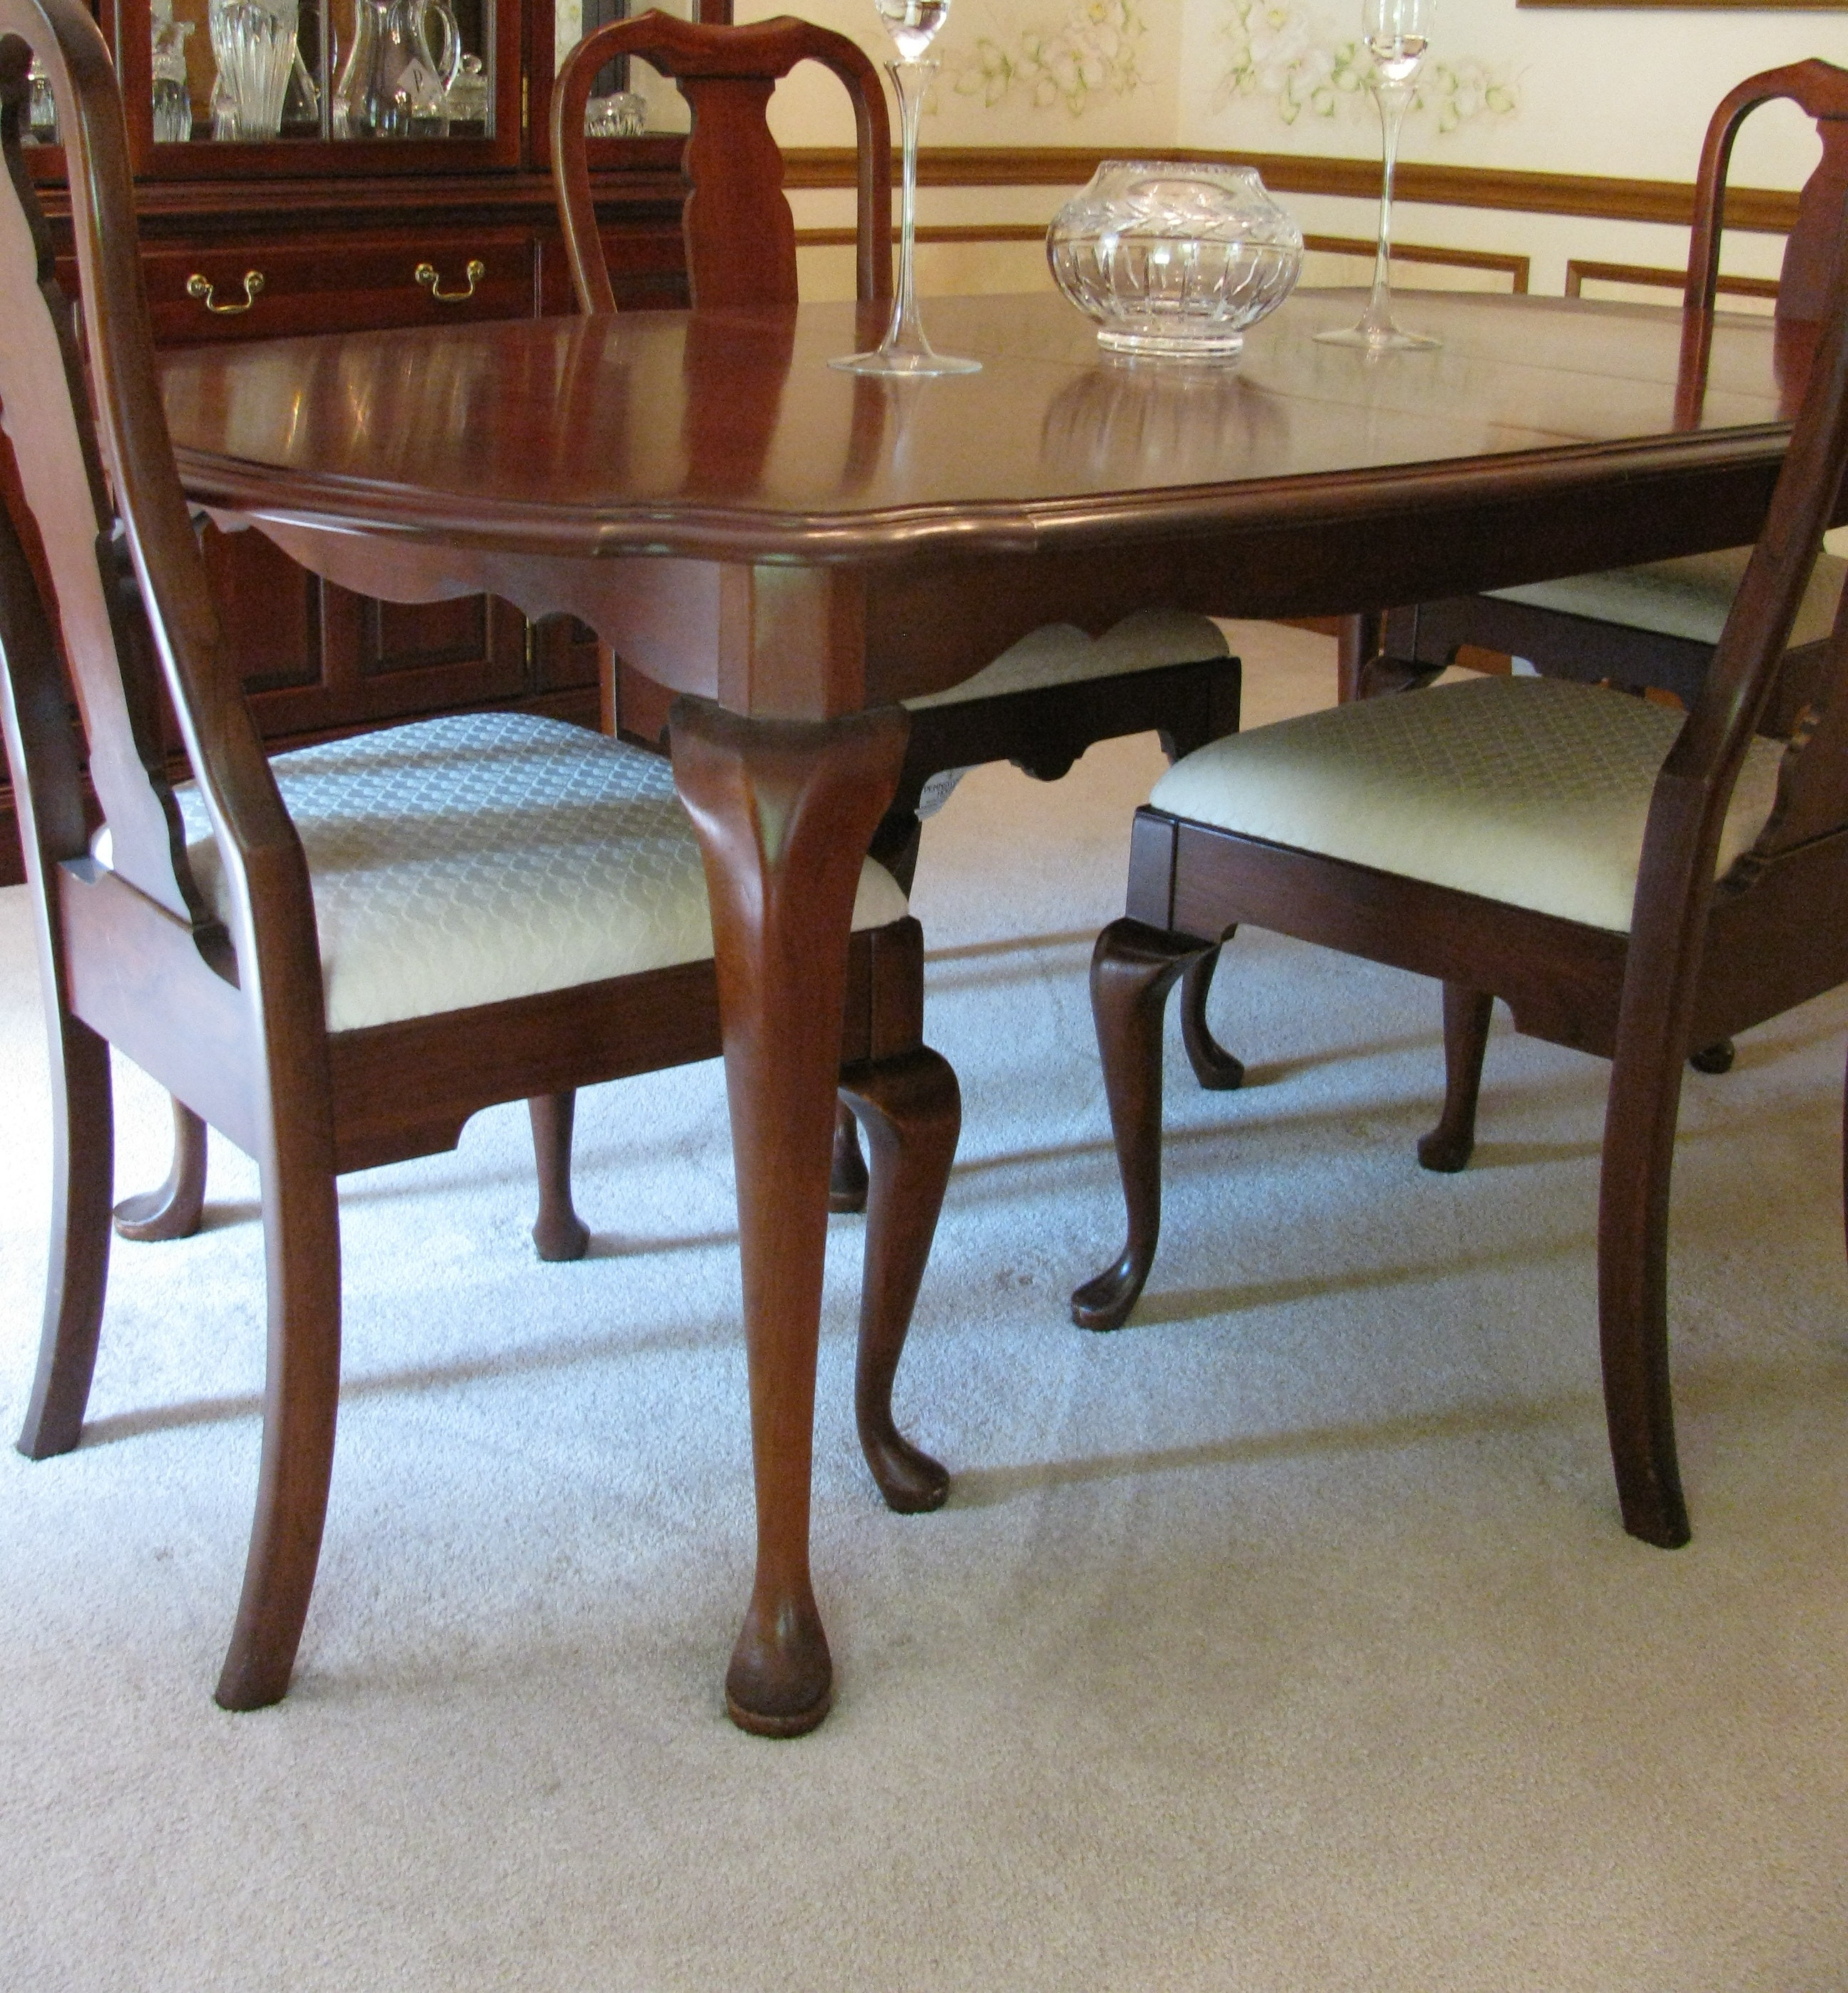 pennsylvania house cherry queen anne dining room table and chairs